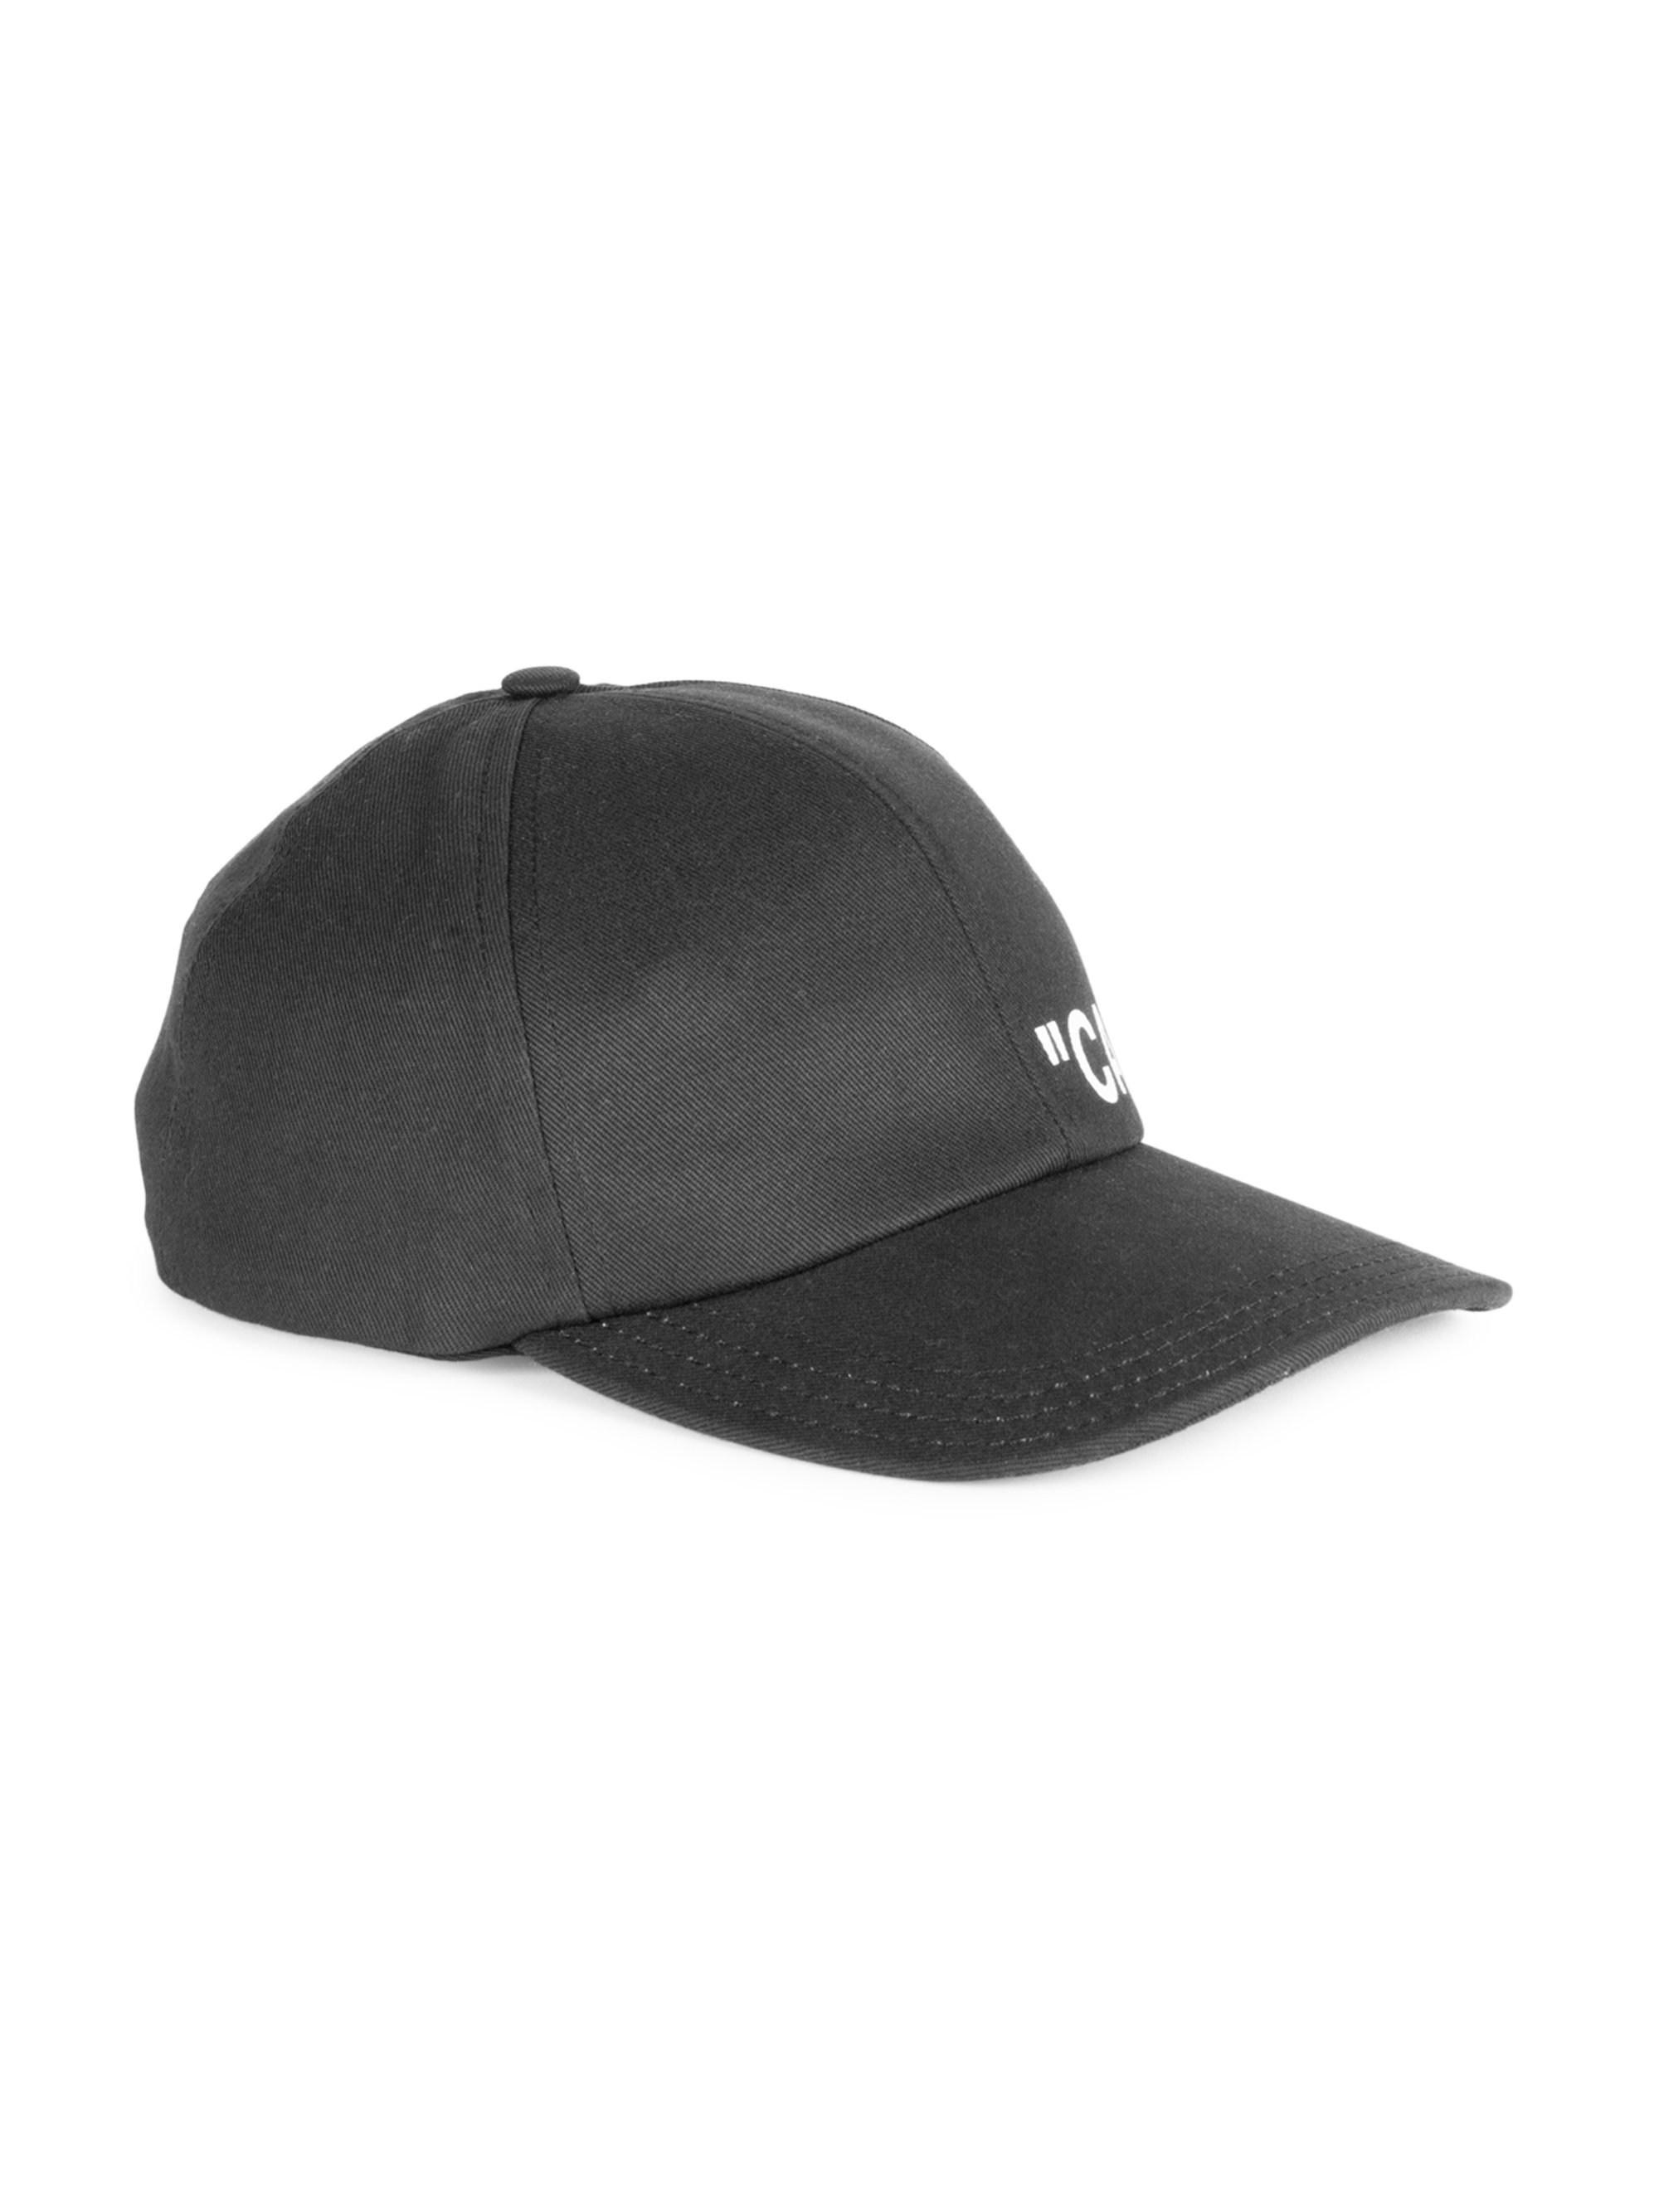 c11284445b6 Off-White c o Virgil Abloh Quote Cotton Baseball Cap in Black for Men - Lyst